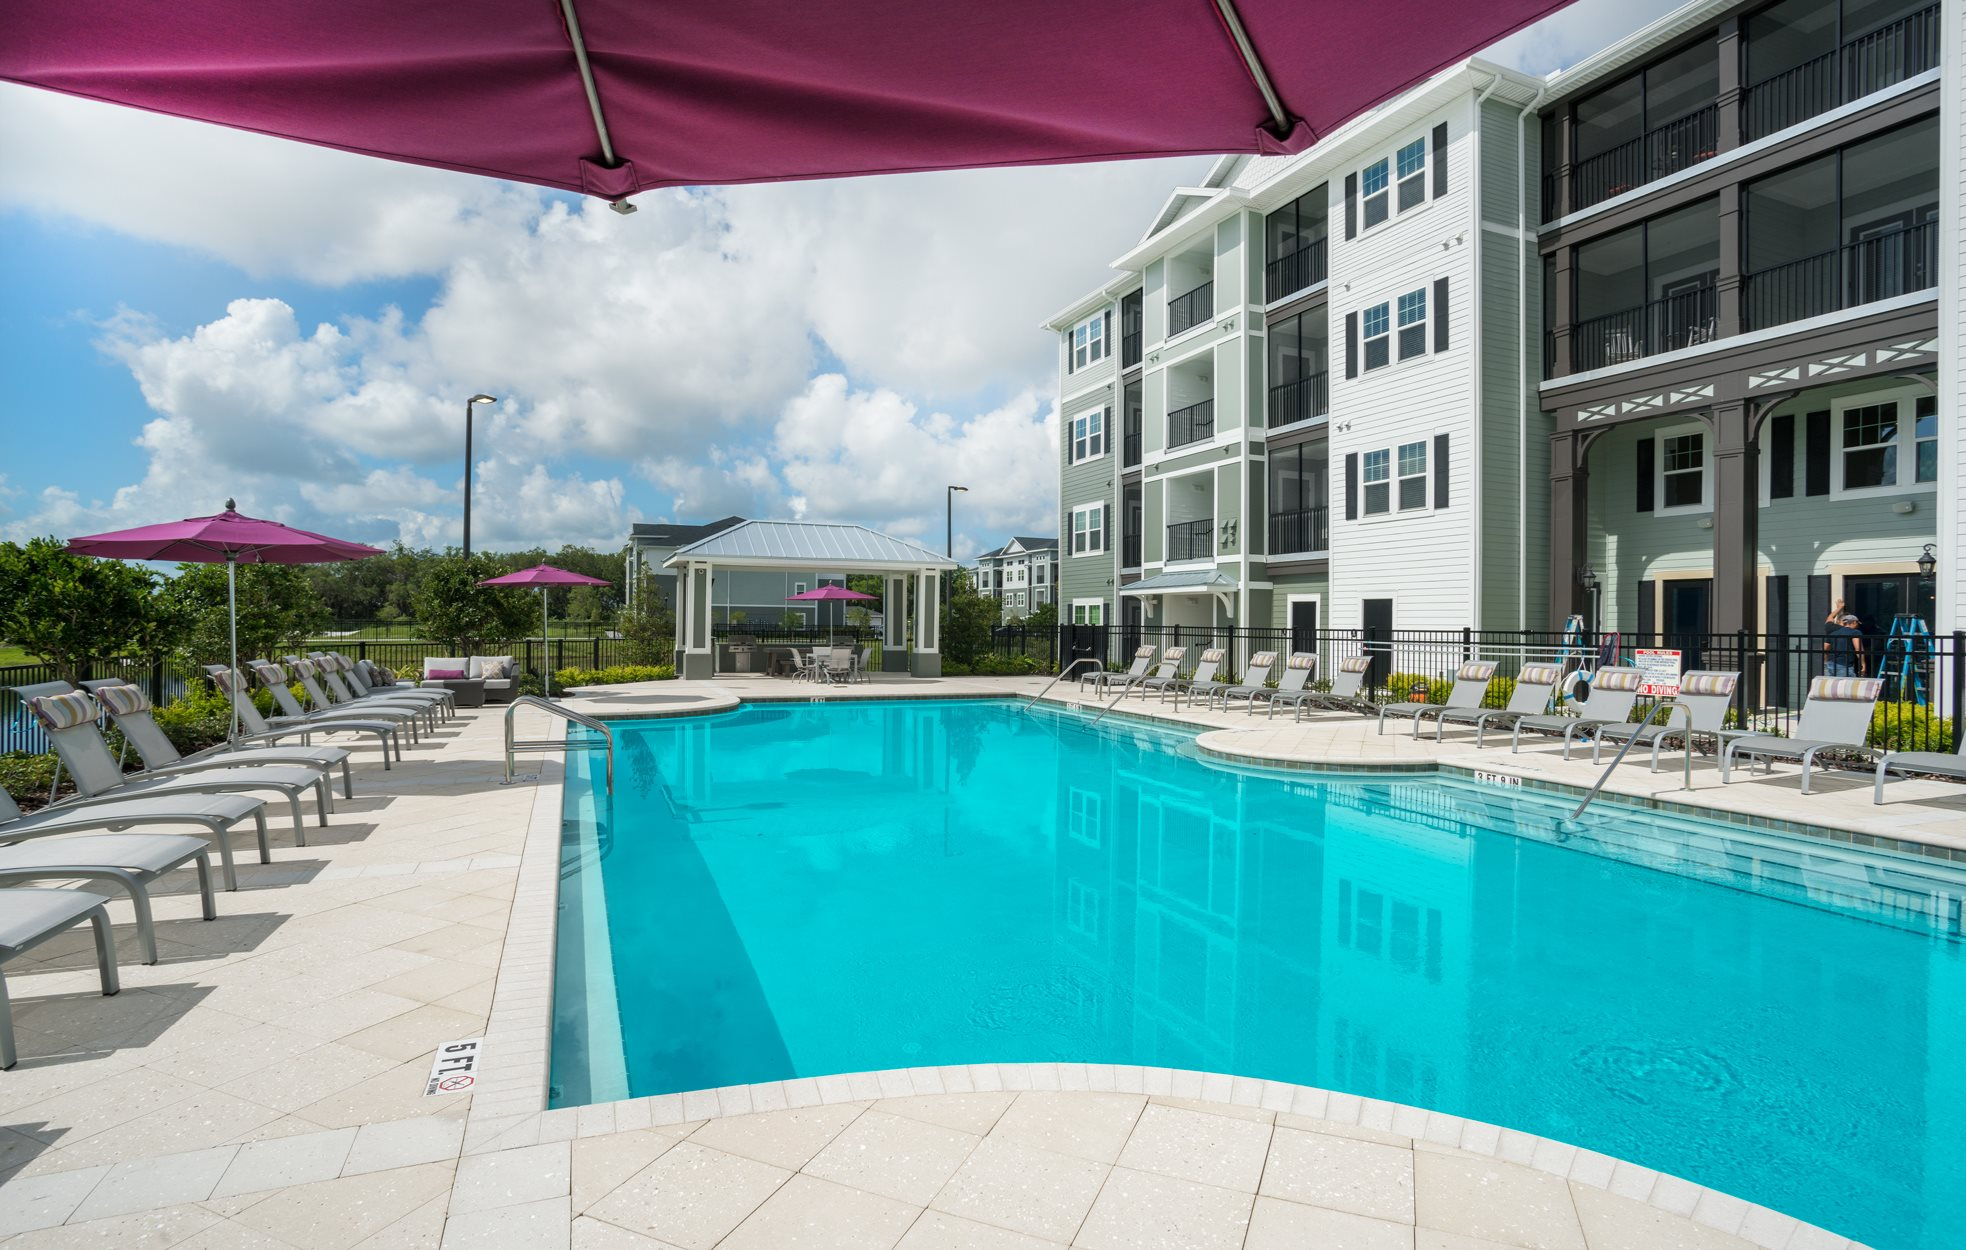 Palms at magnolia park apartments in riverview fl - Riverview swimming pool pittsburgh pa ...